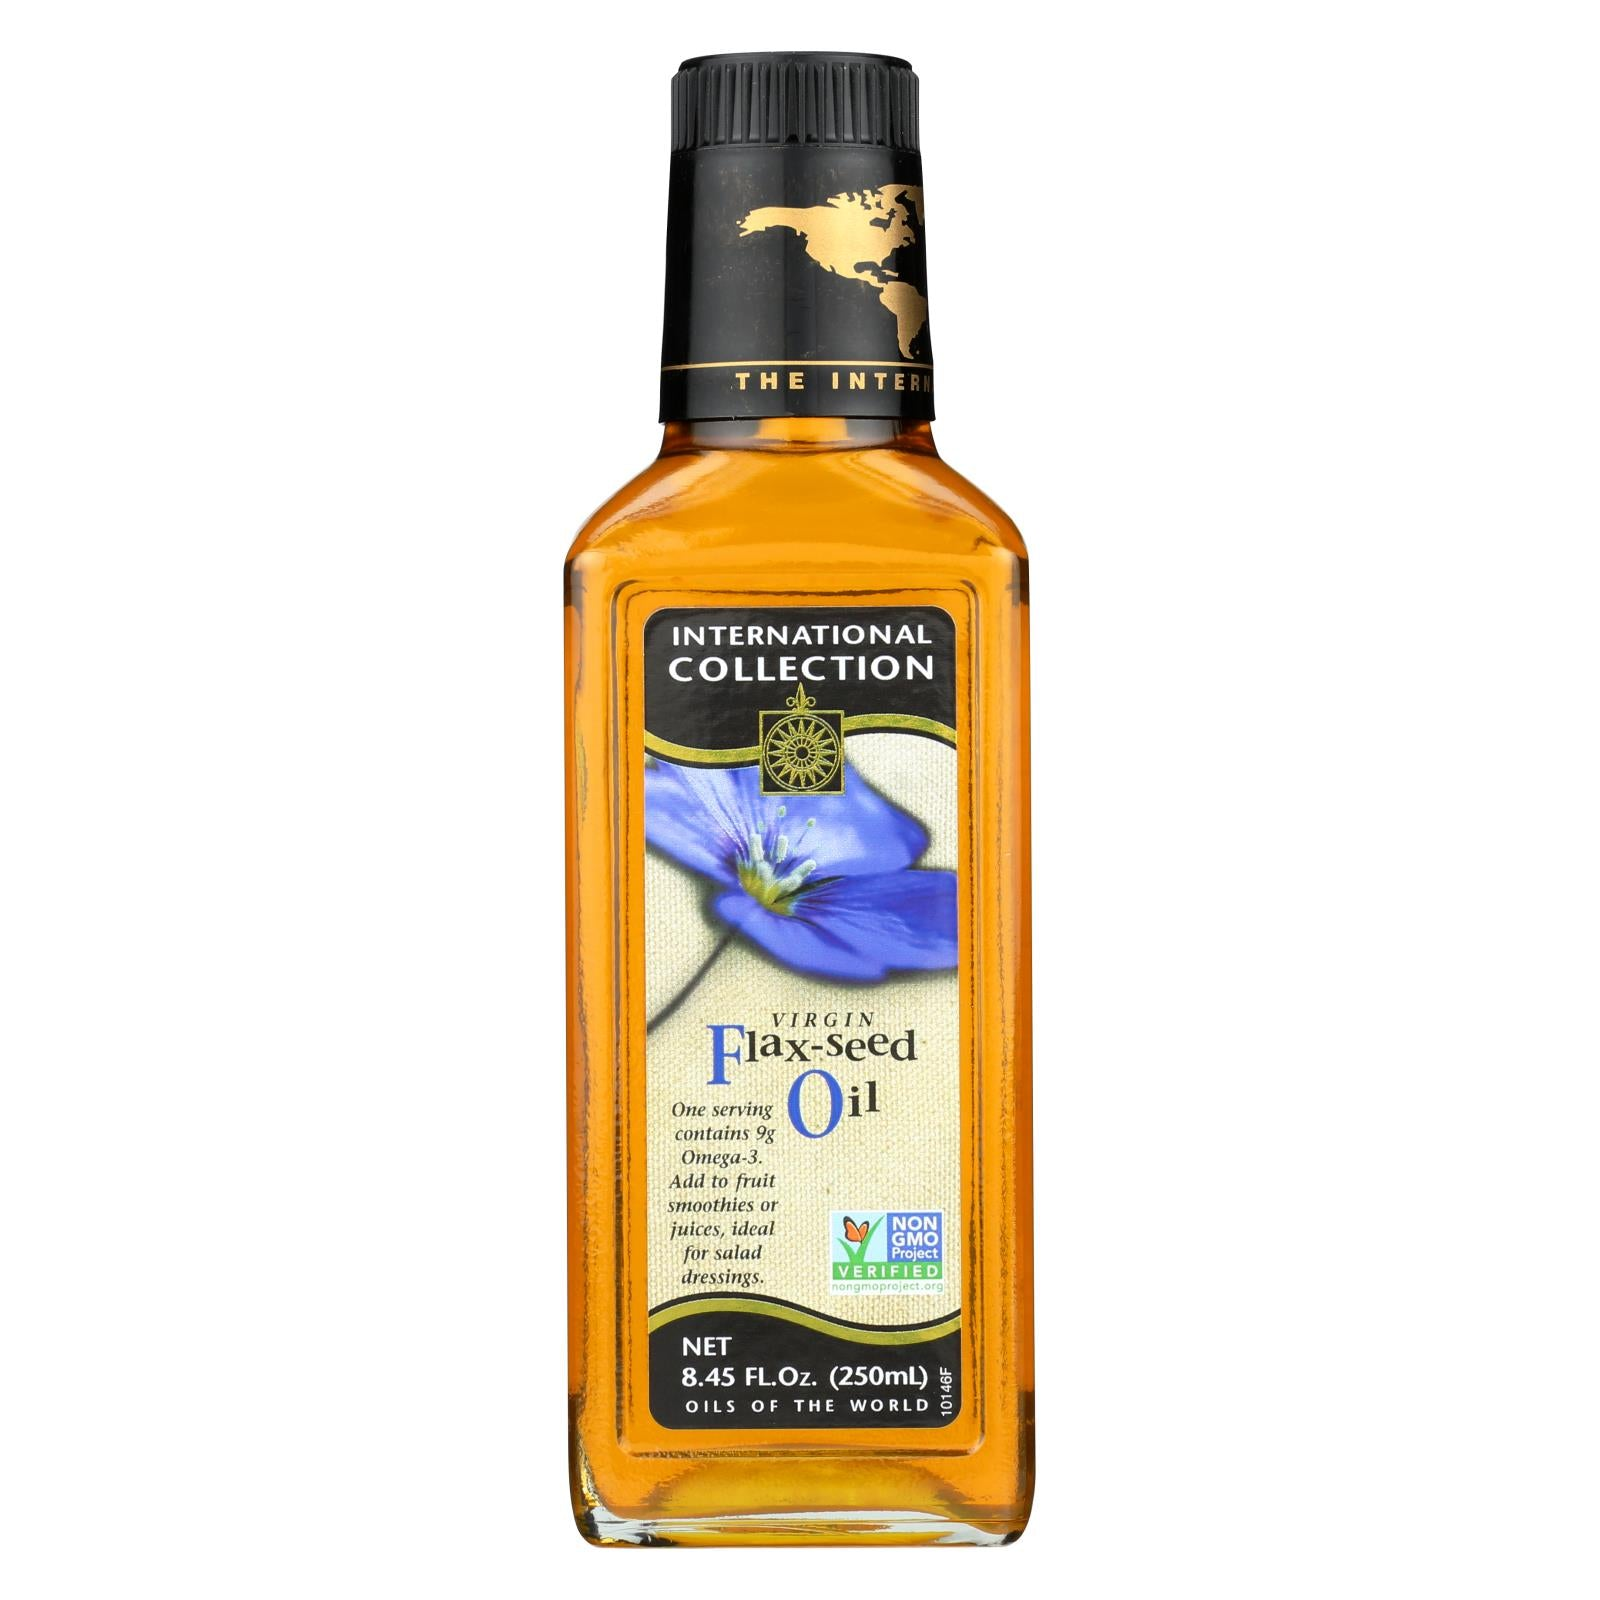 International Collection Flax-seed Oil - Virgin - Case Of 6 - 8.45 Fl Oz.